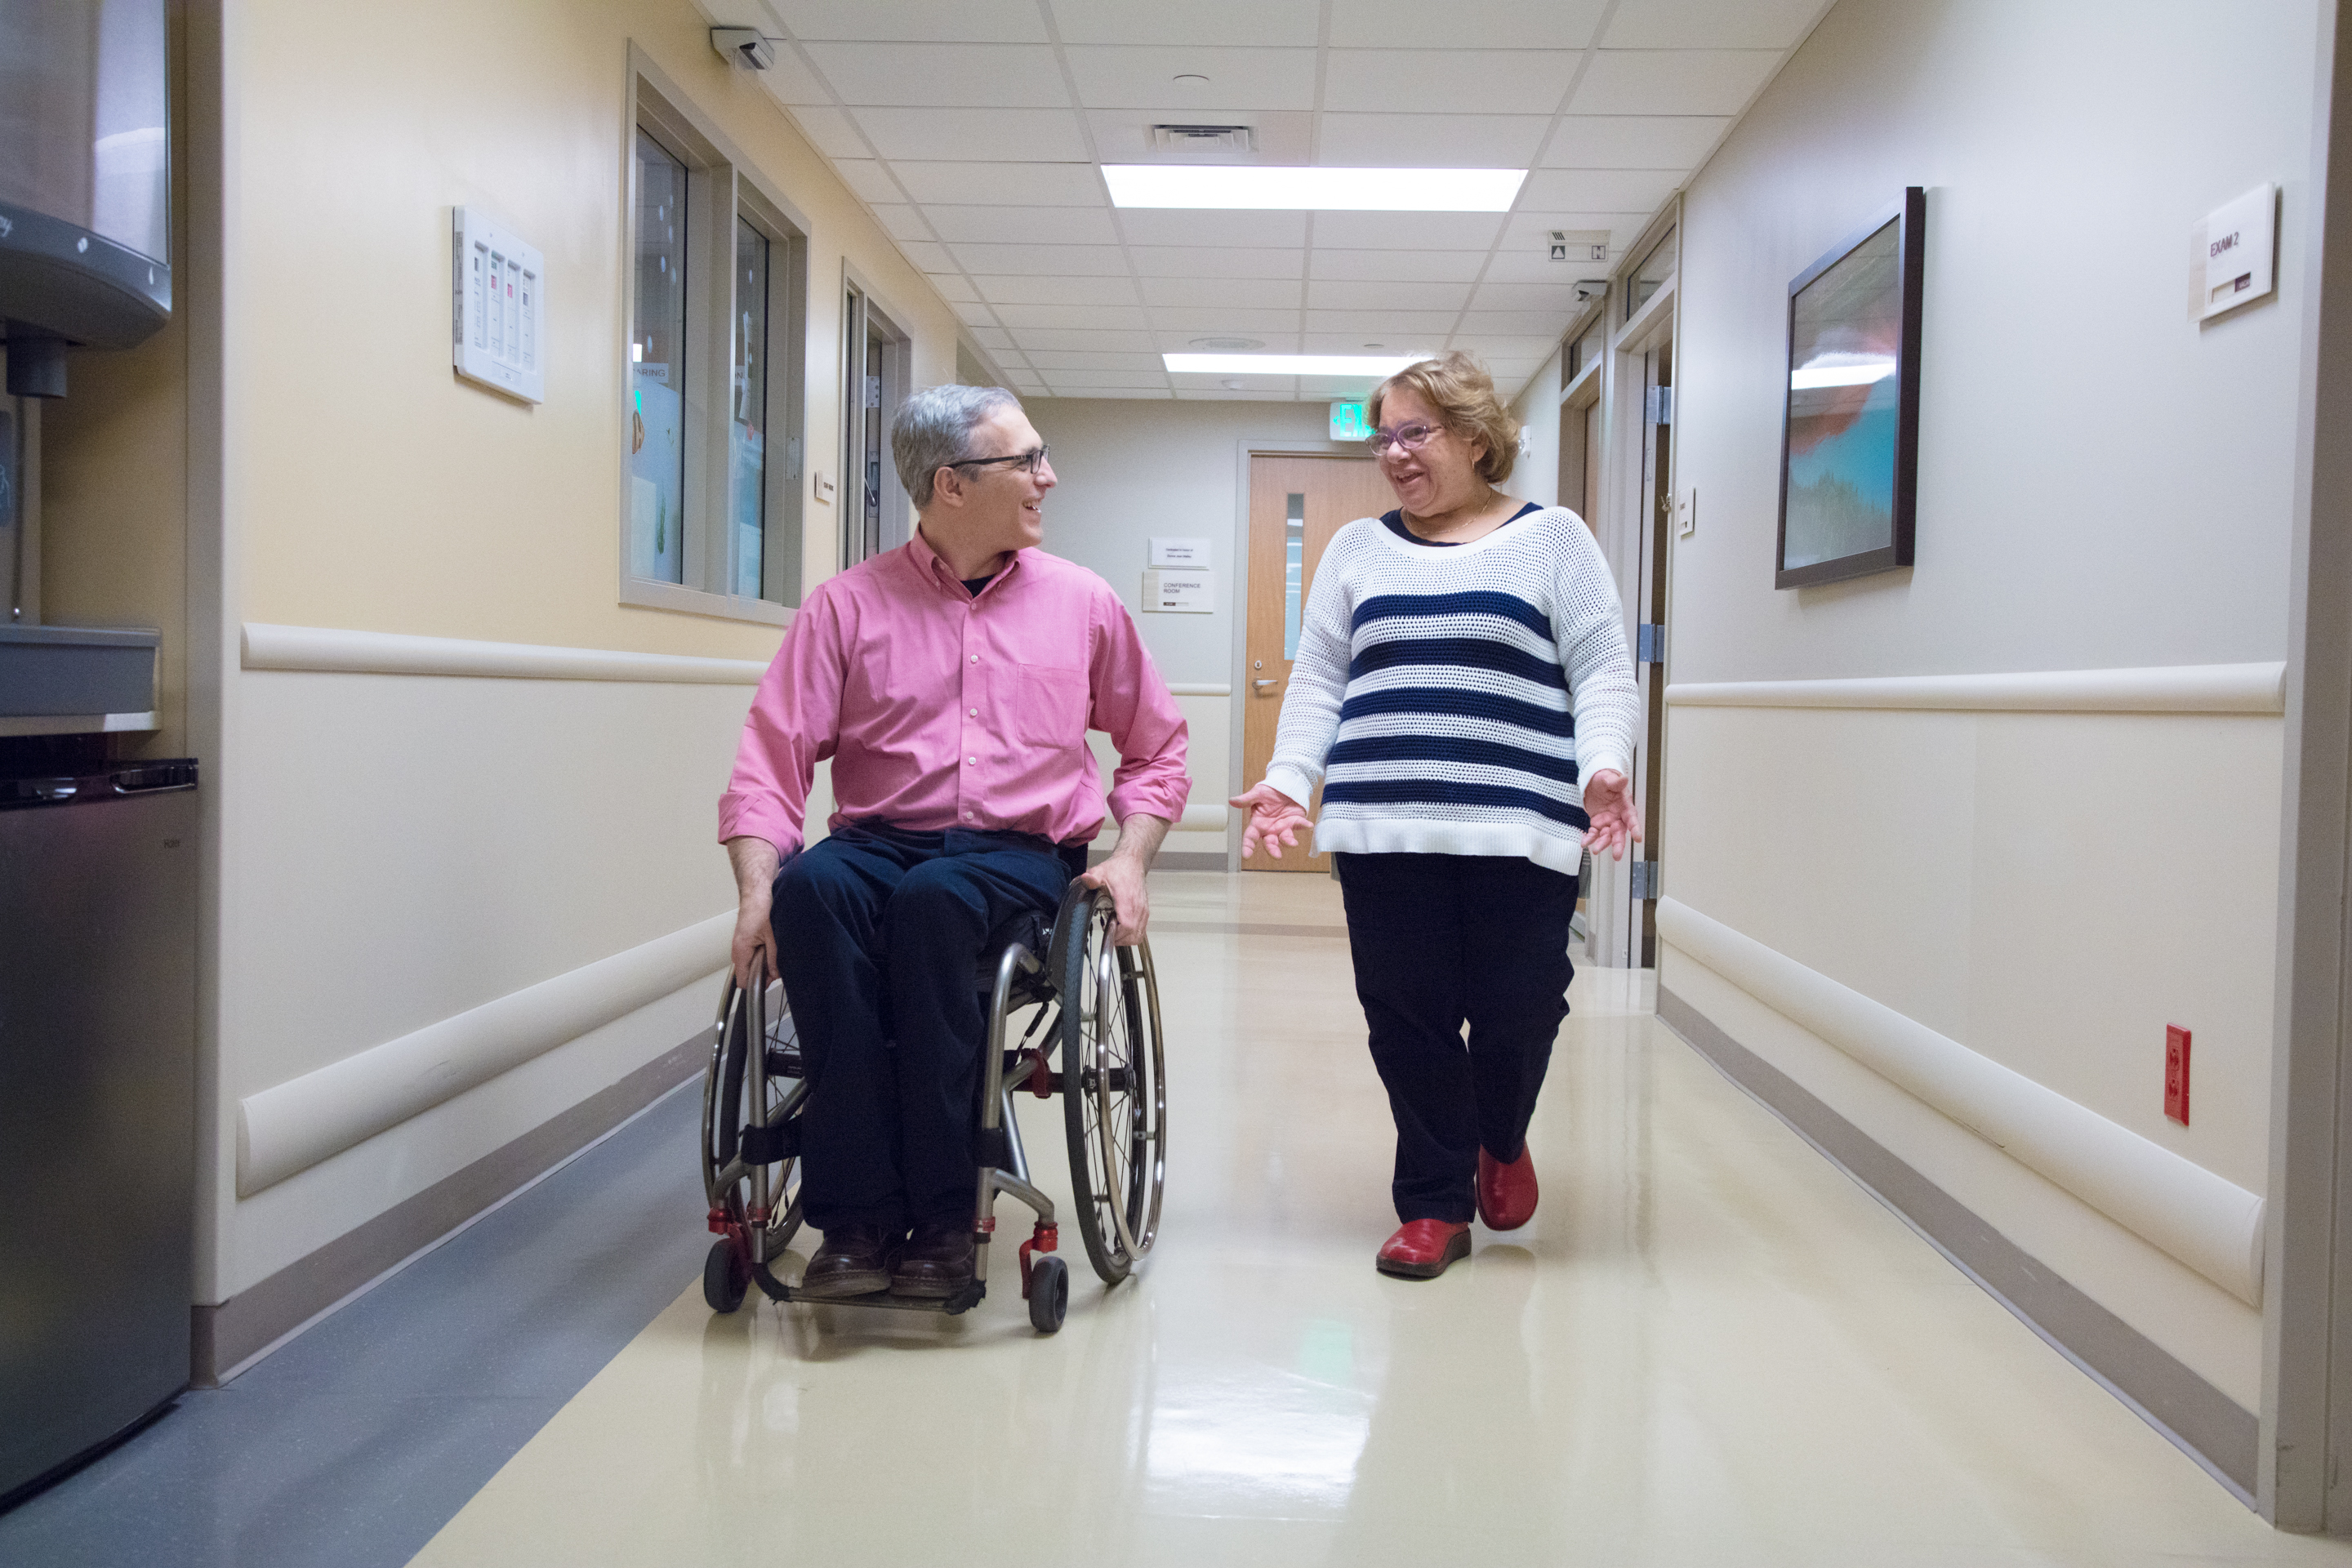 Craig Hospital's Dr. Scelza chose to become a spinal cord injury expert after recovering from his own personal experience with a spinal cord injury